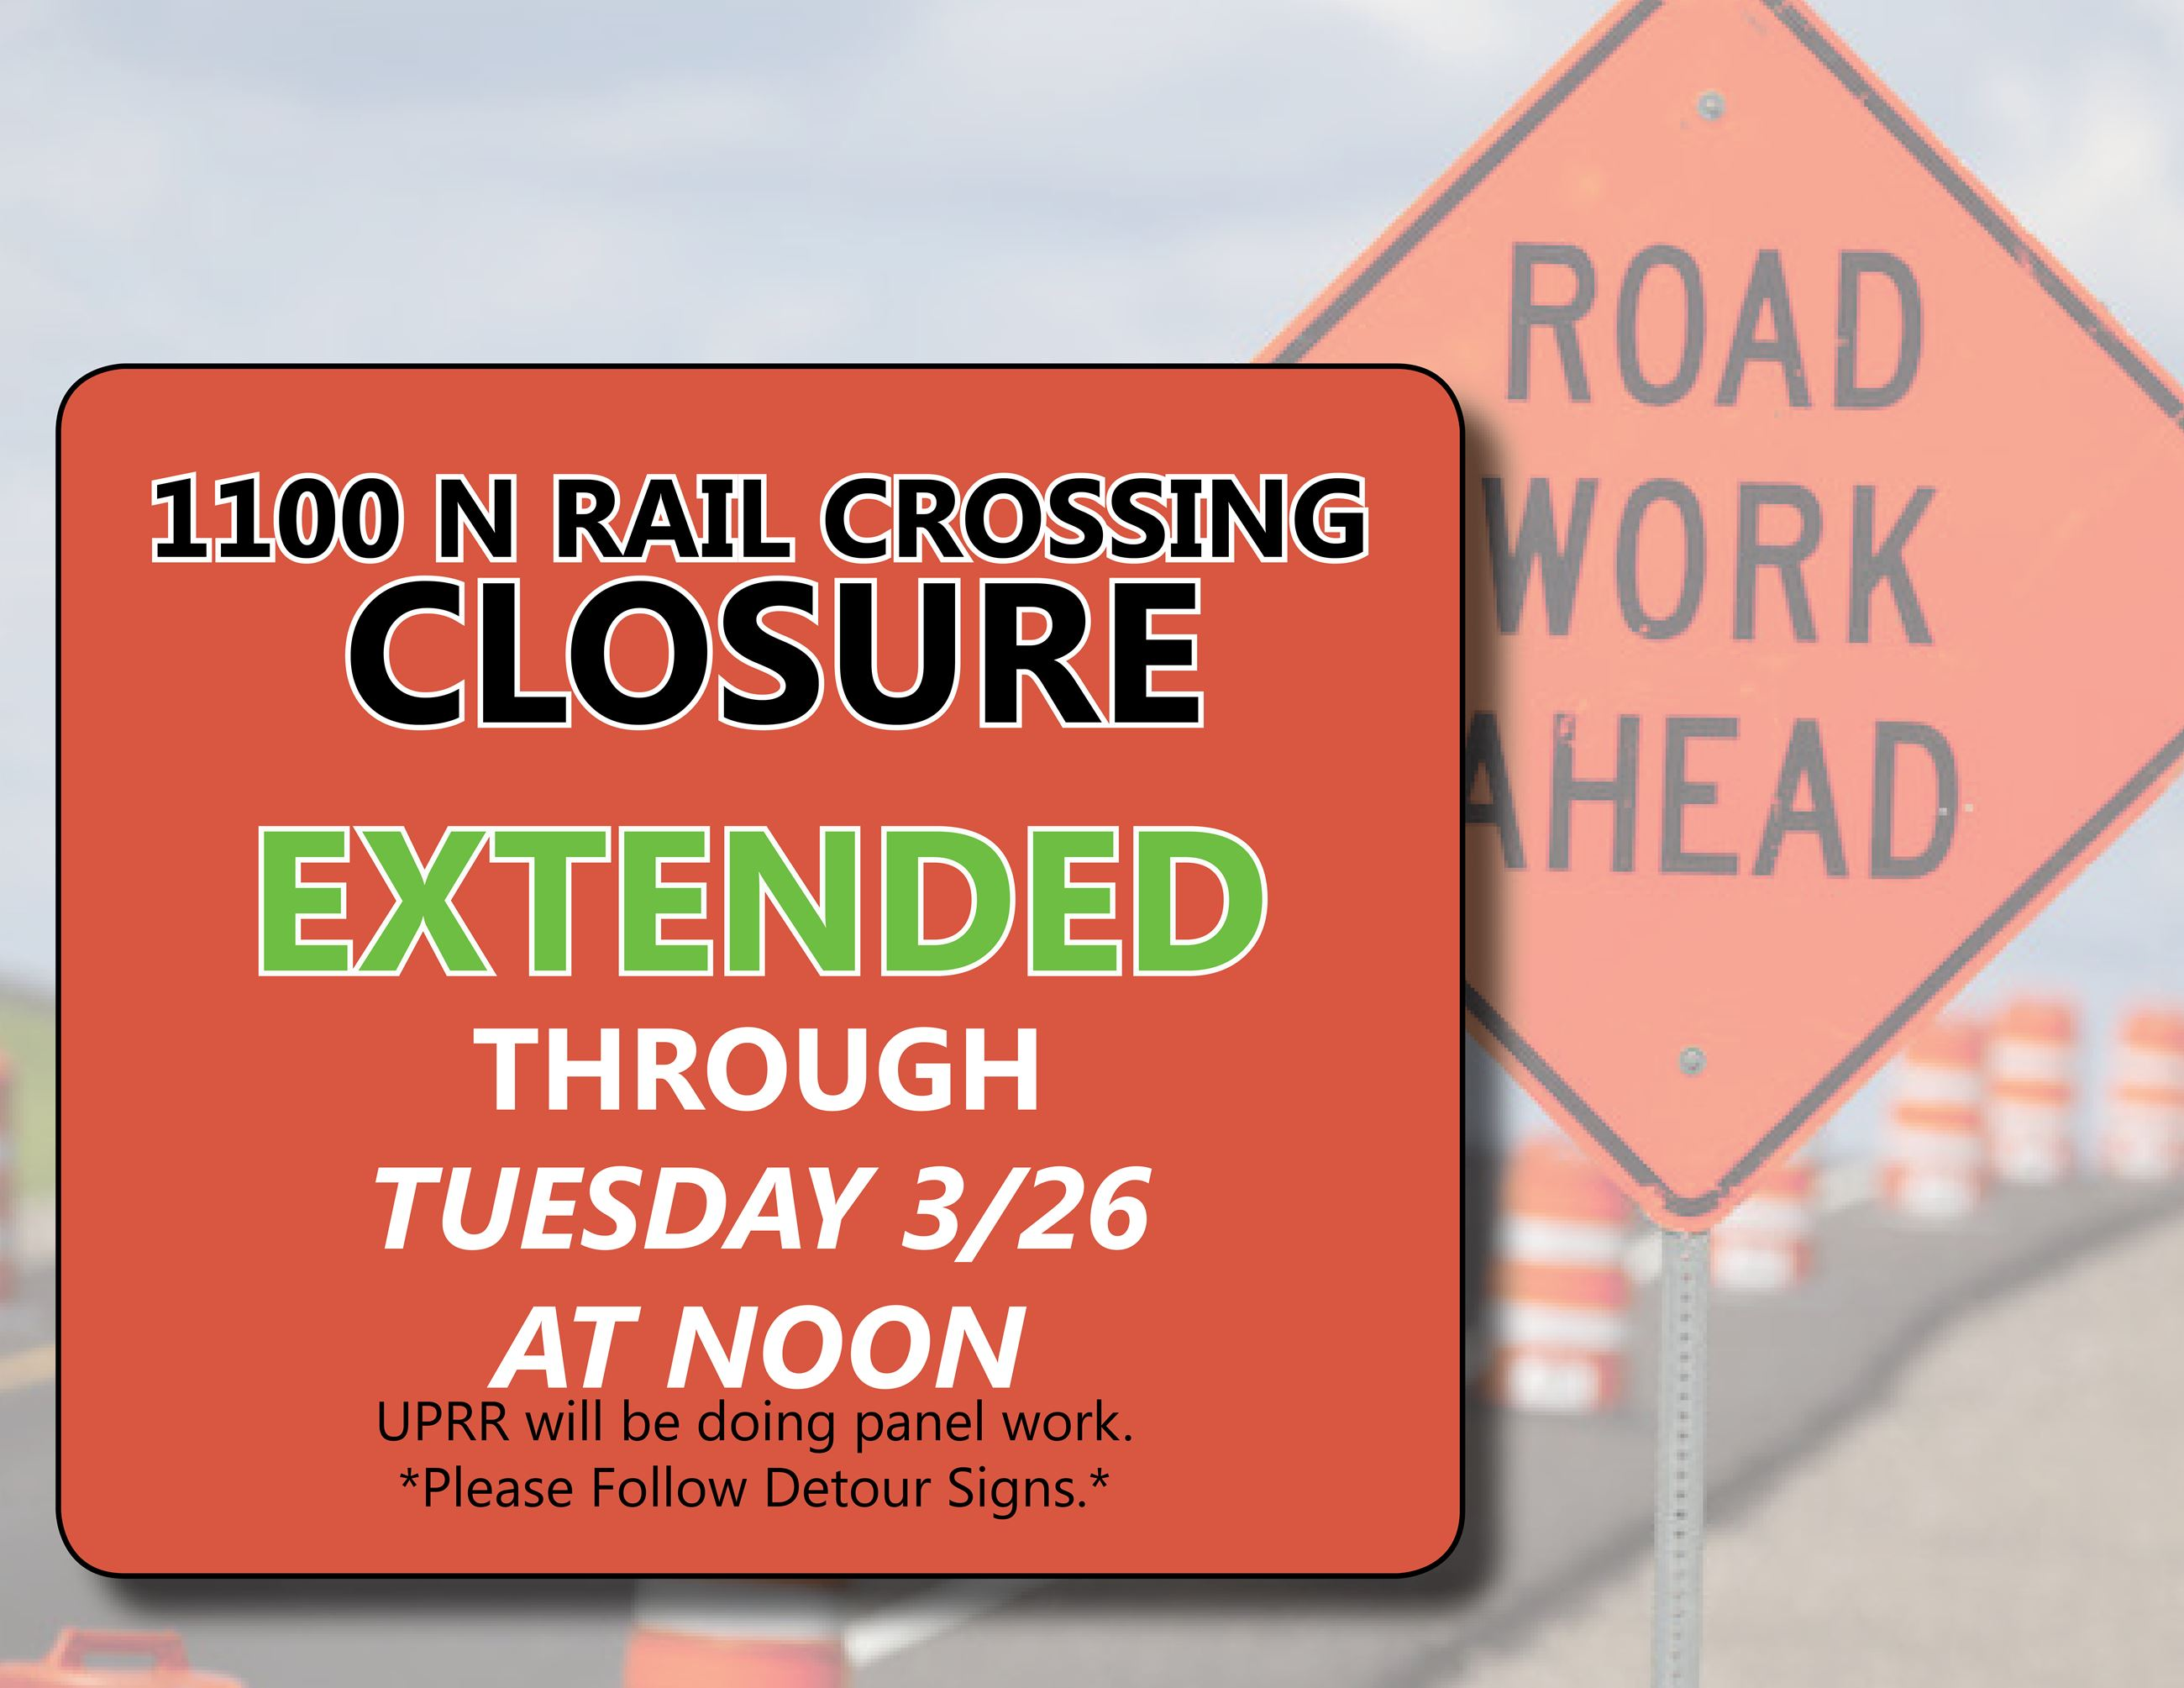 Road Construction railroad crossing closure EXTENDED THRU Mar 26 2019